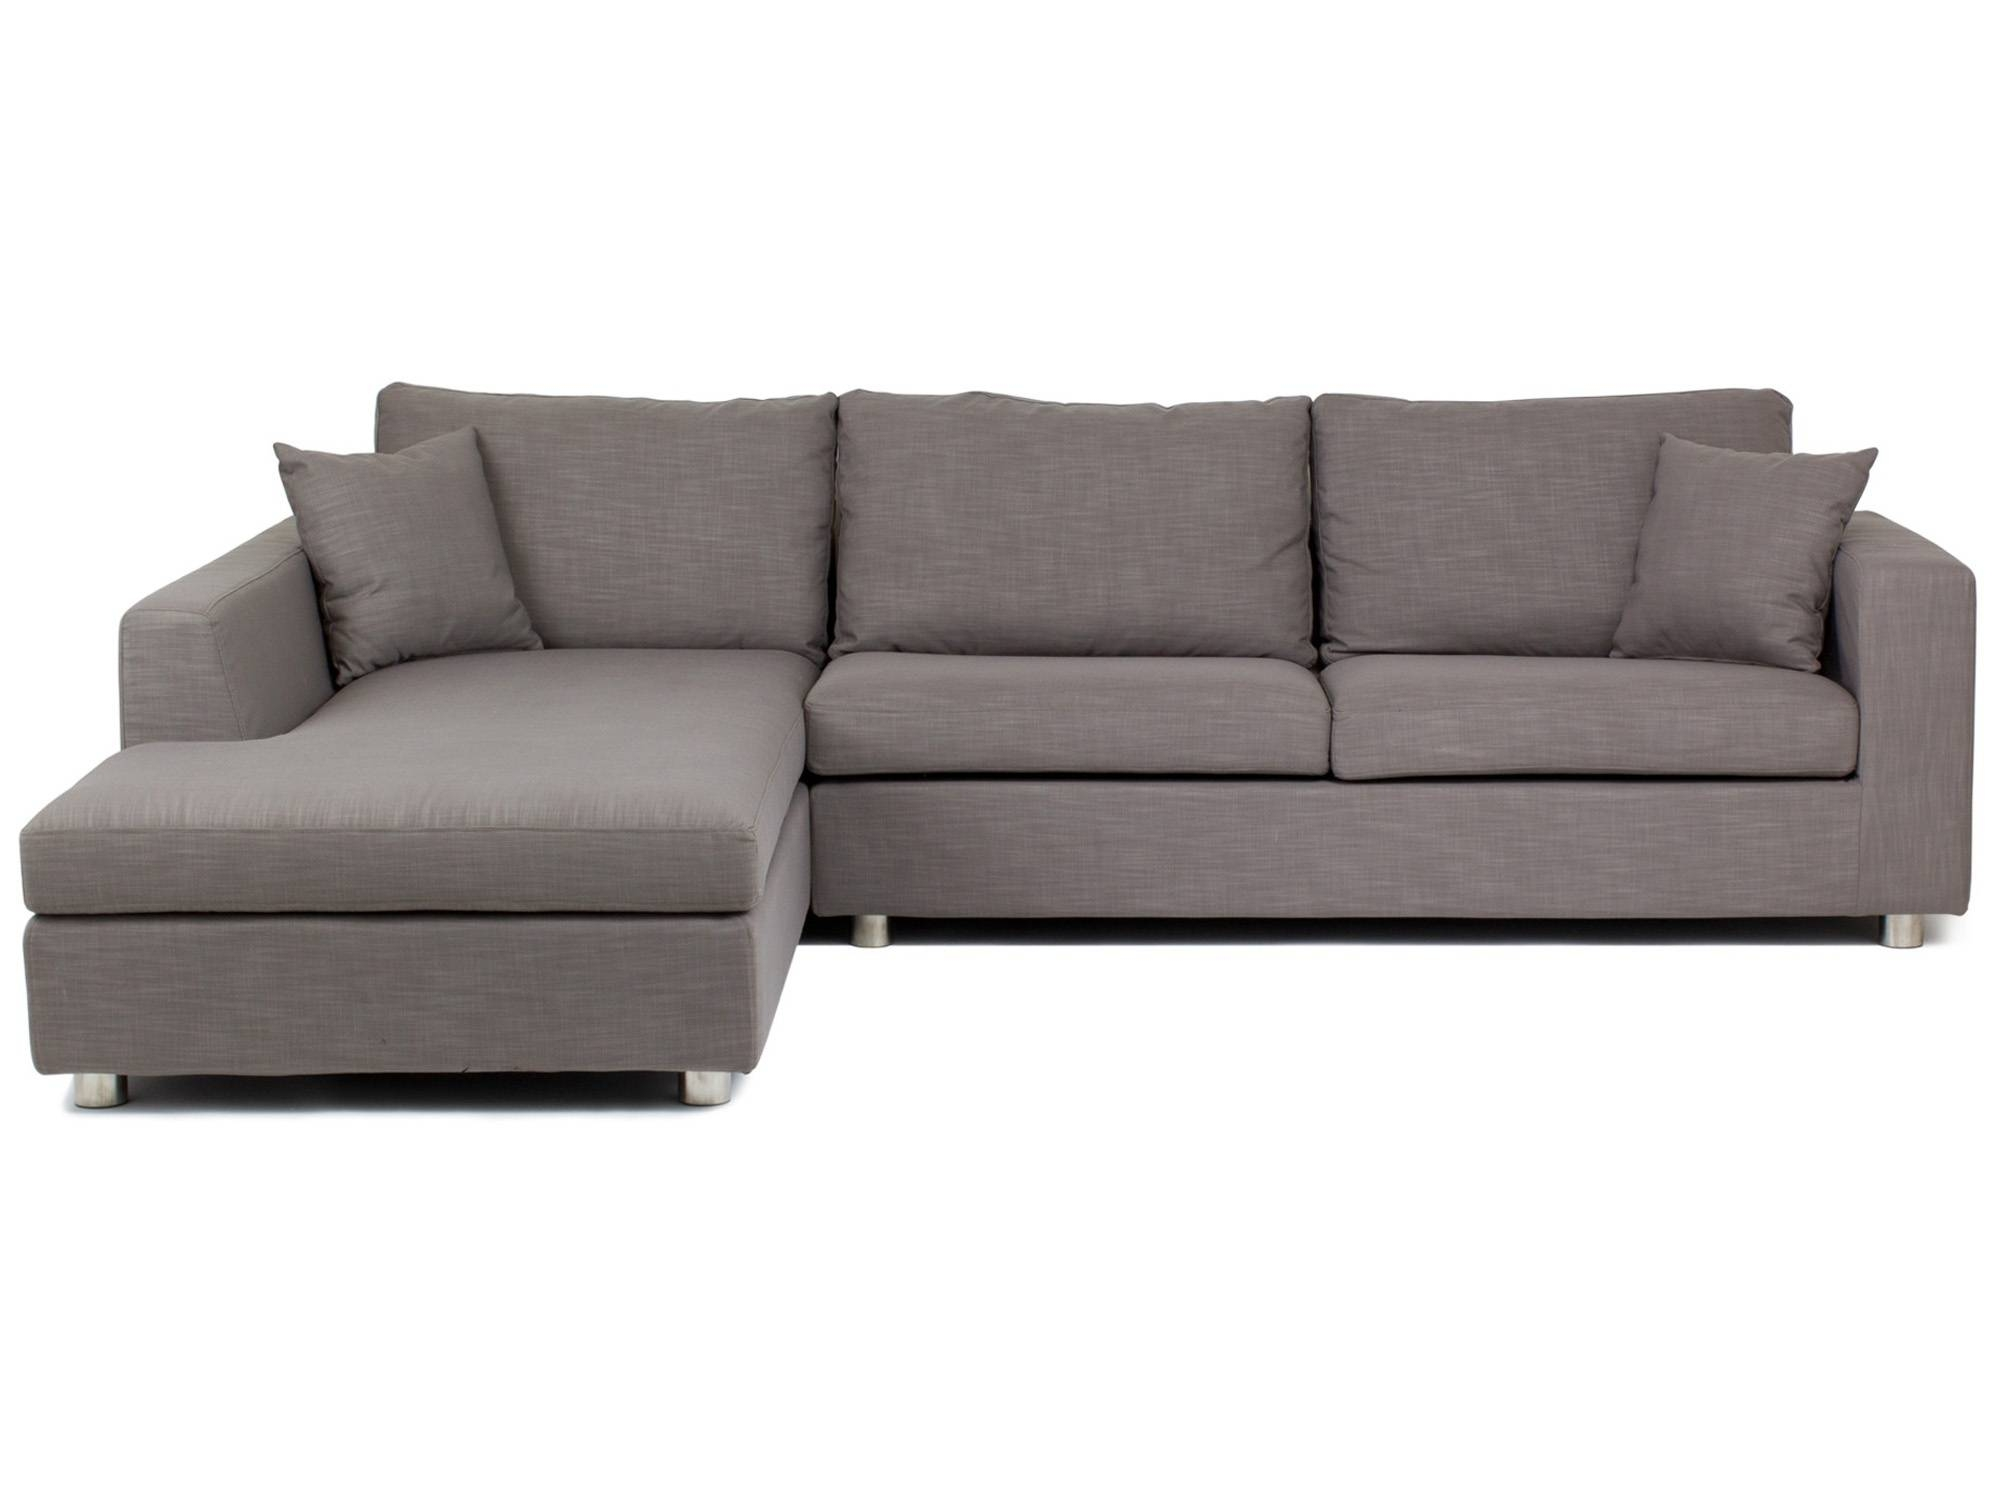 Mondo Storage – Corner Sofa Bed | Loungelovers Intended For Sofa Beds With Storage Chaise (View 11 of 15)